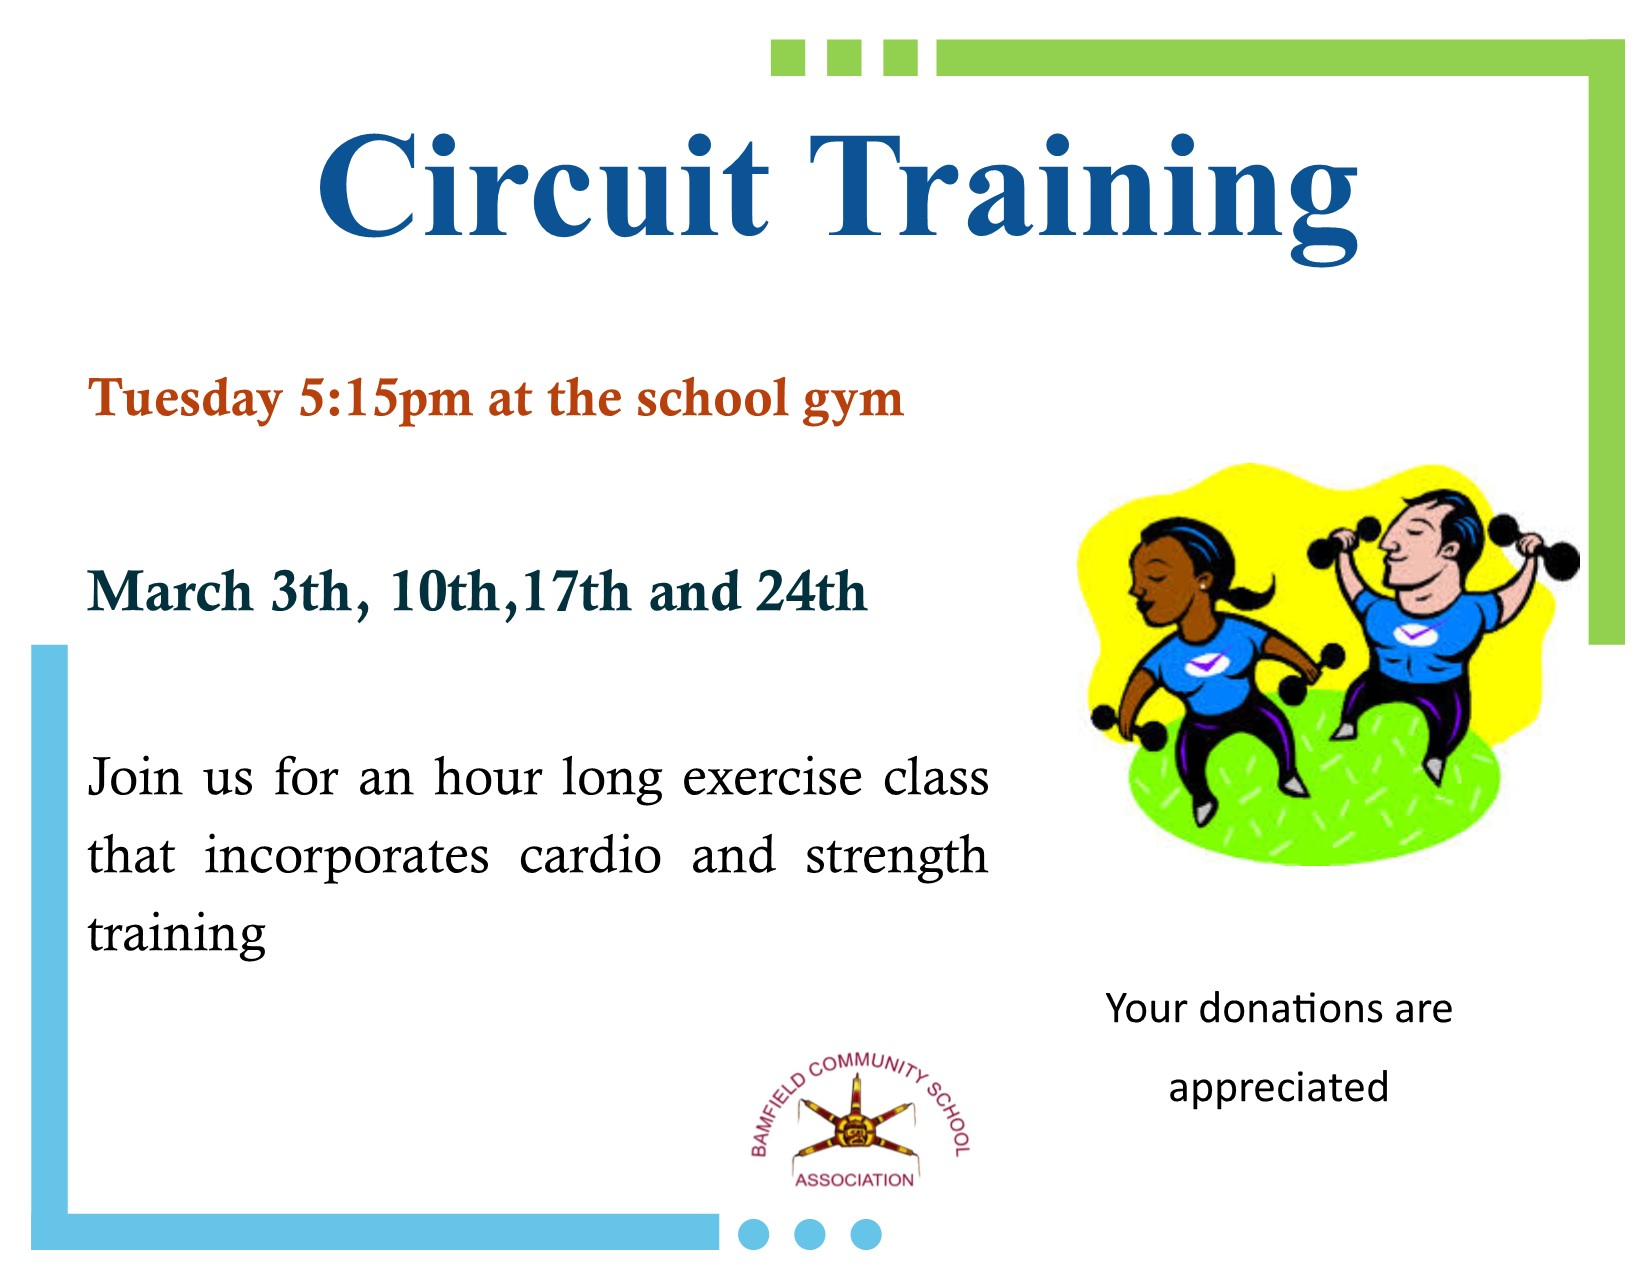 Circuit Training News What Is The Photos